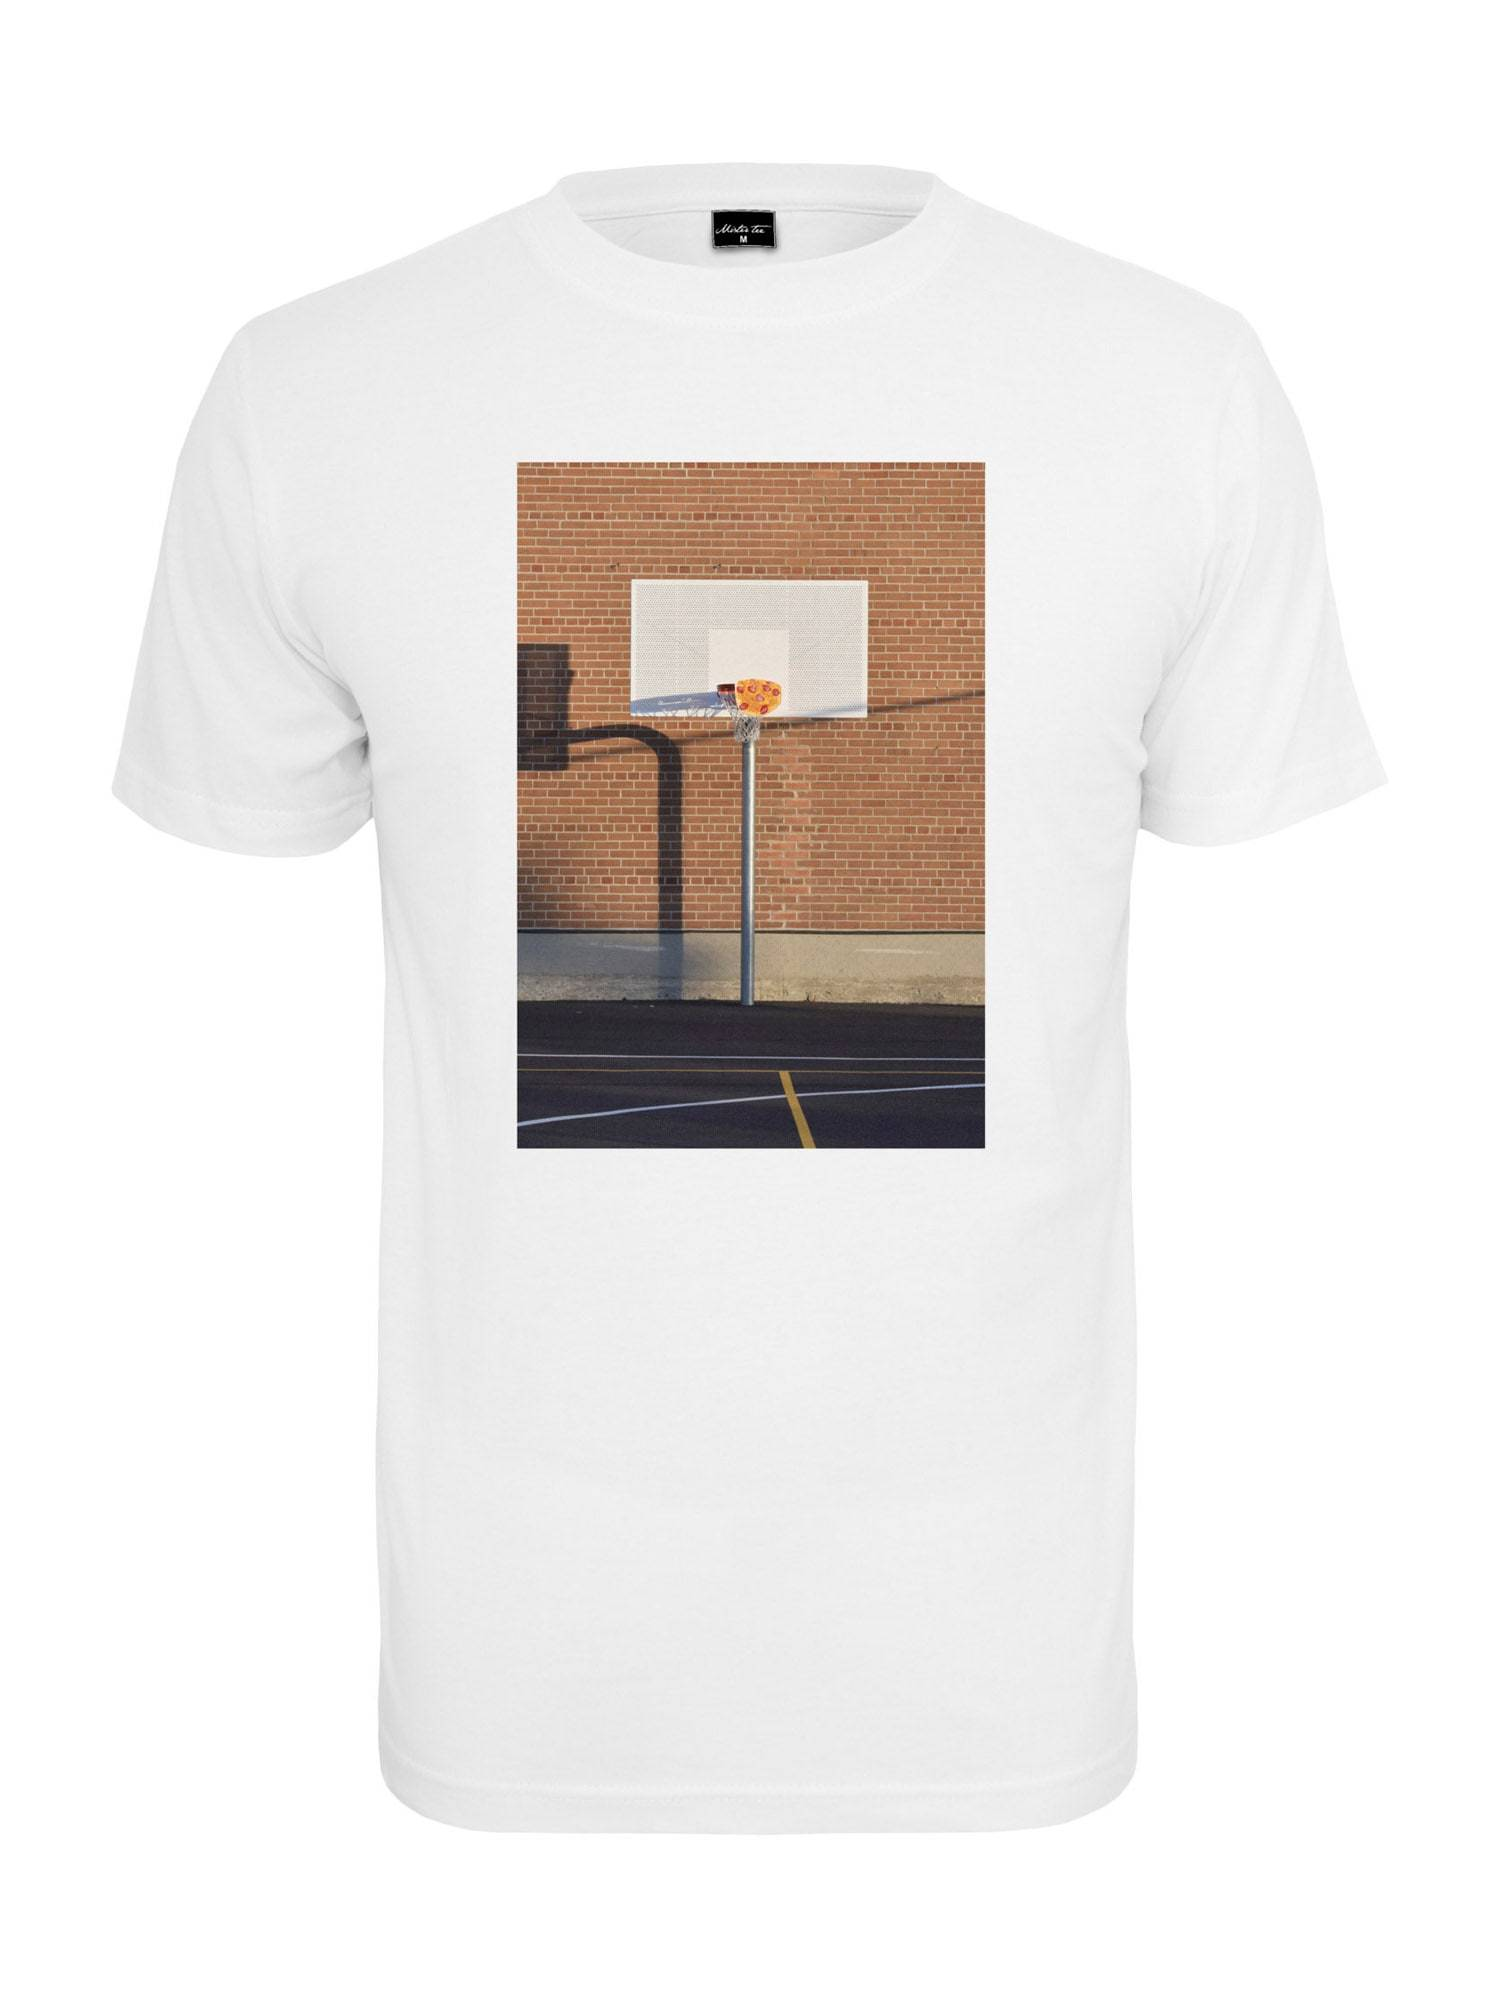 Tee T-Shirt 'Pizza Basketball Court'  - Blanc - Taille: M - male